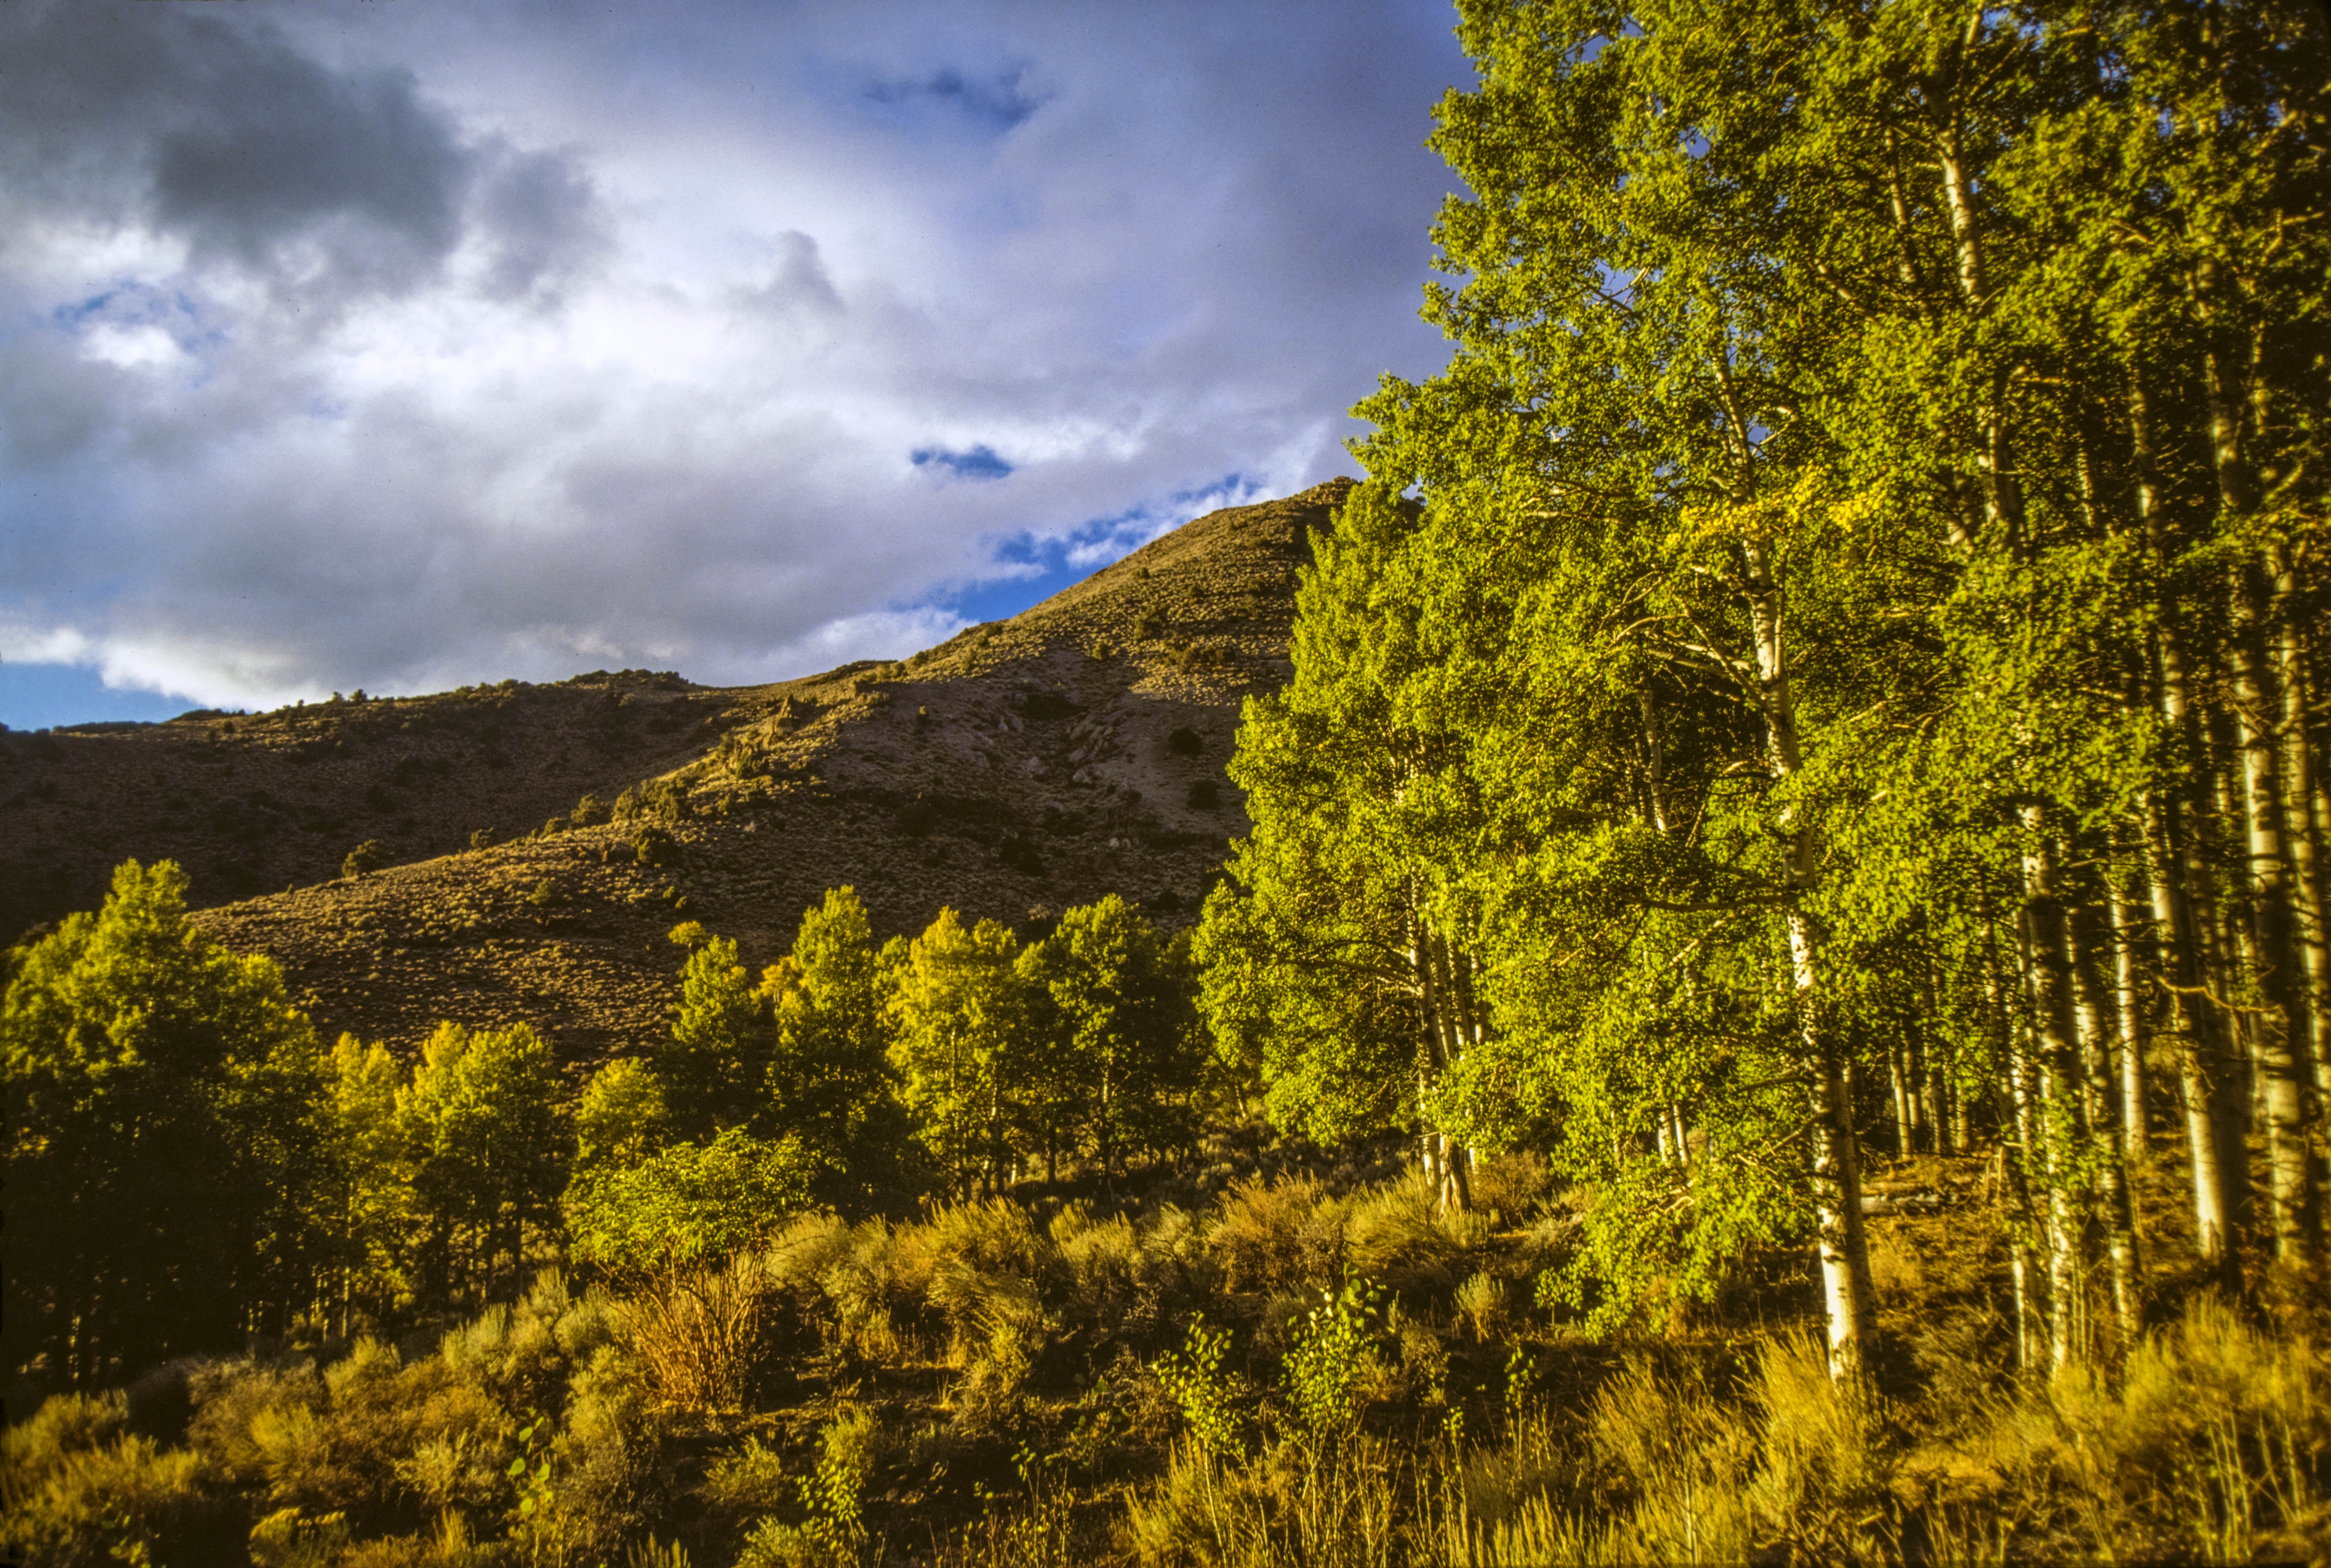 Green trees in the Desatoya Mountains Wilderness Study Area.